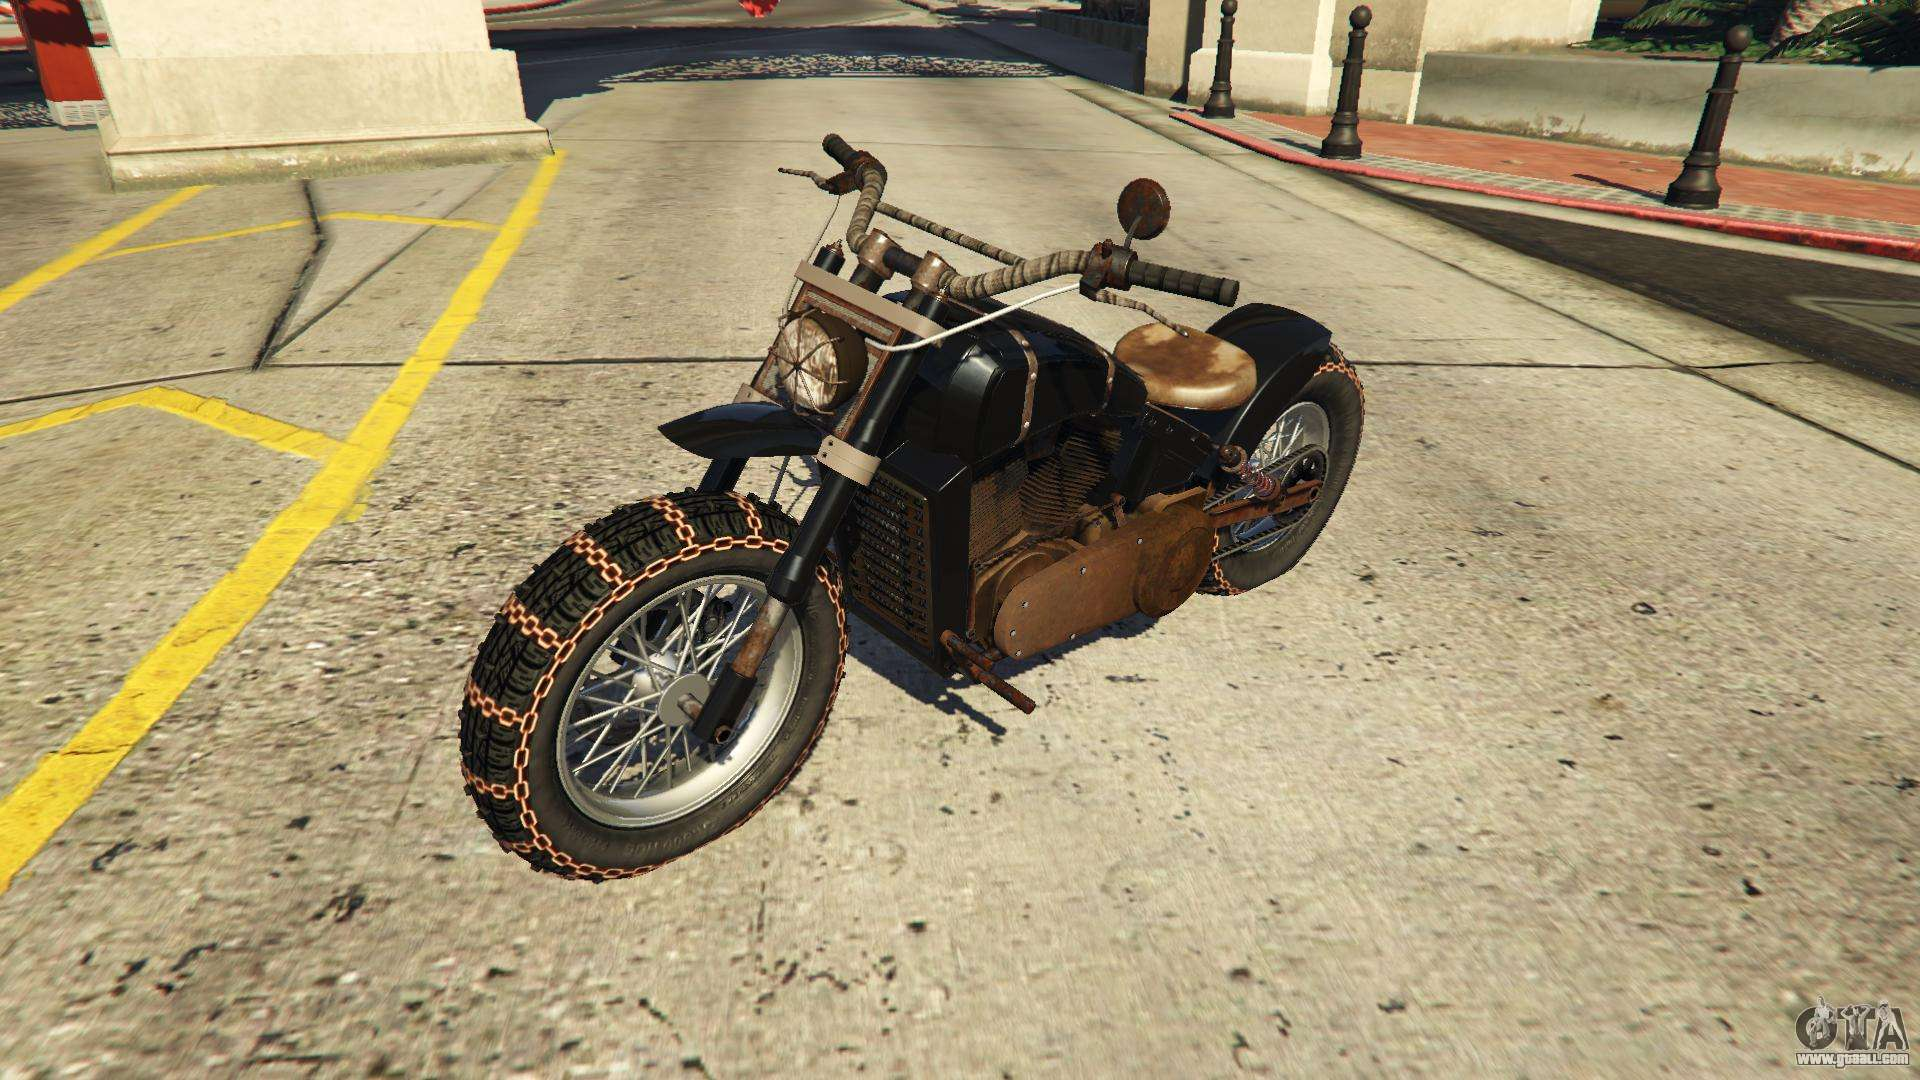 Front and main body view of the deathbike